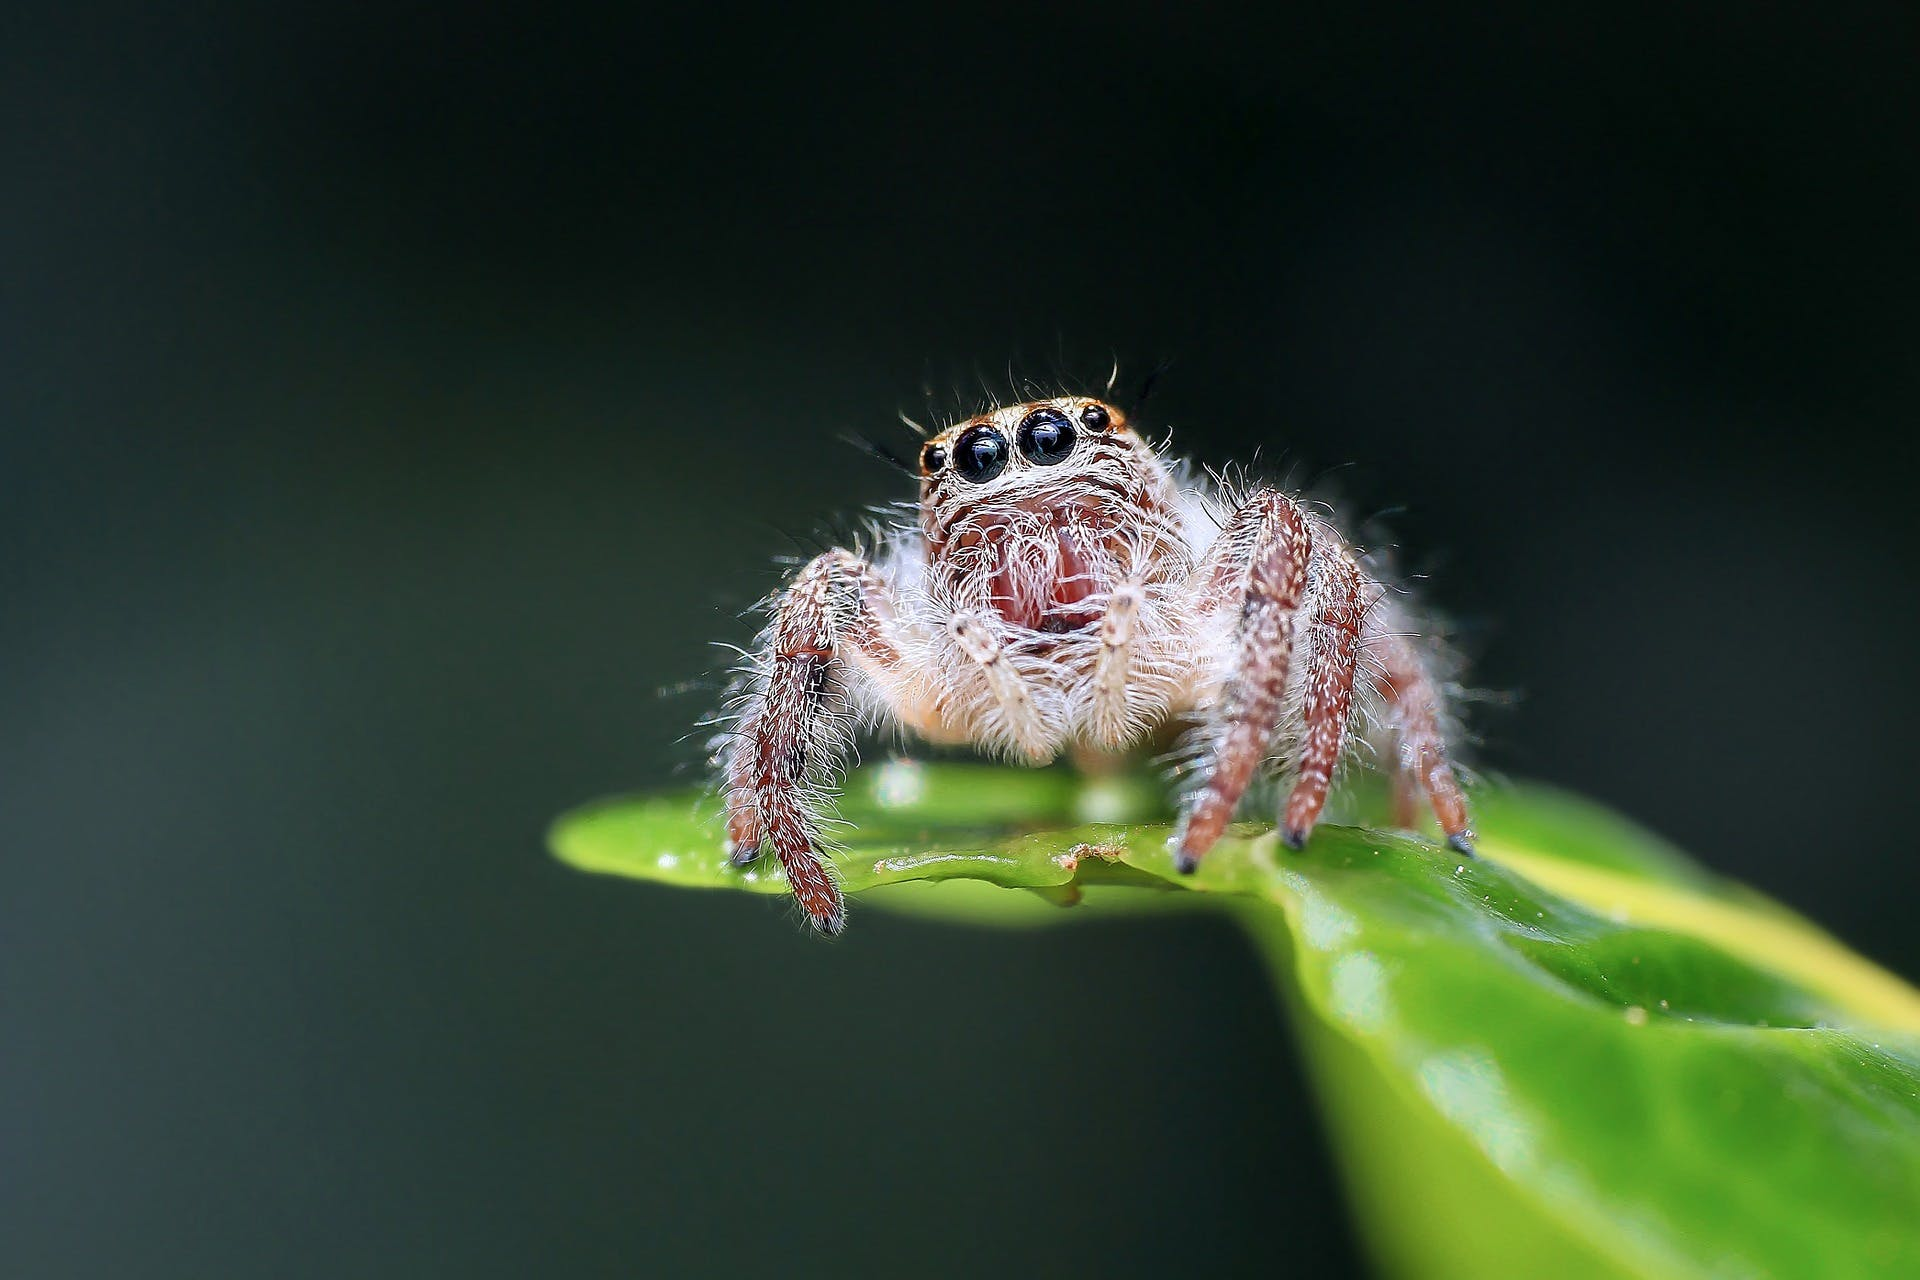 This is a jumping spider